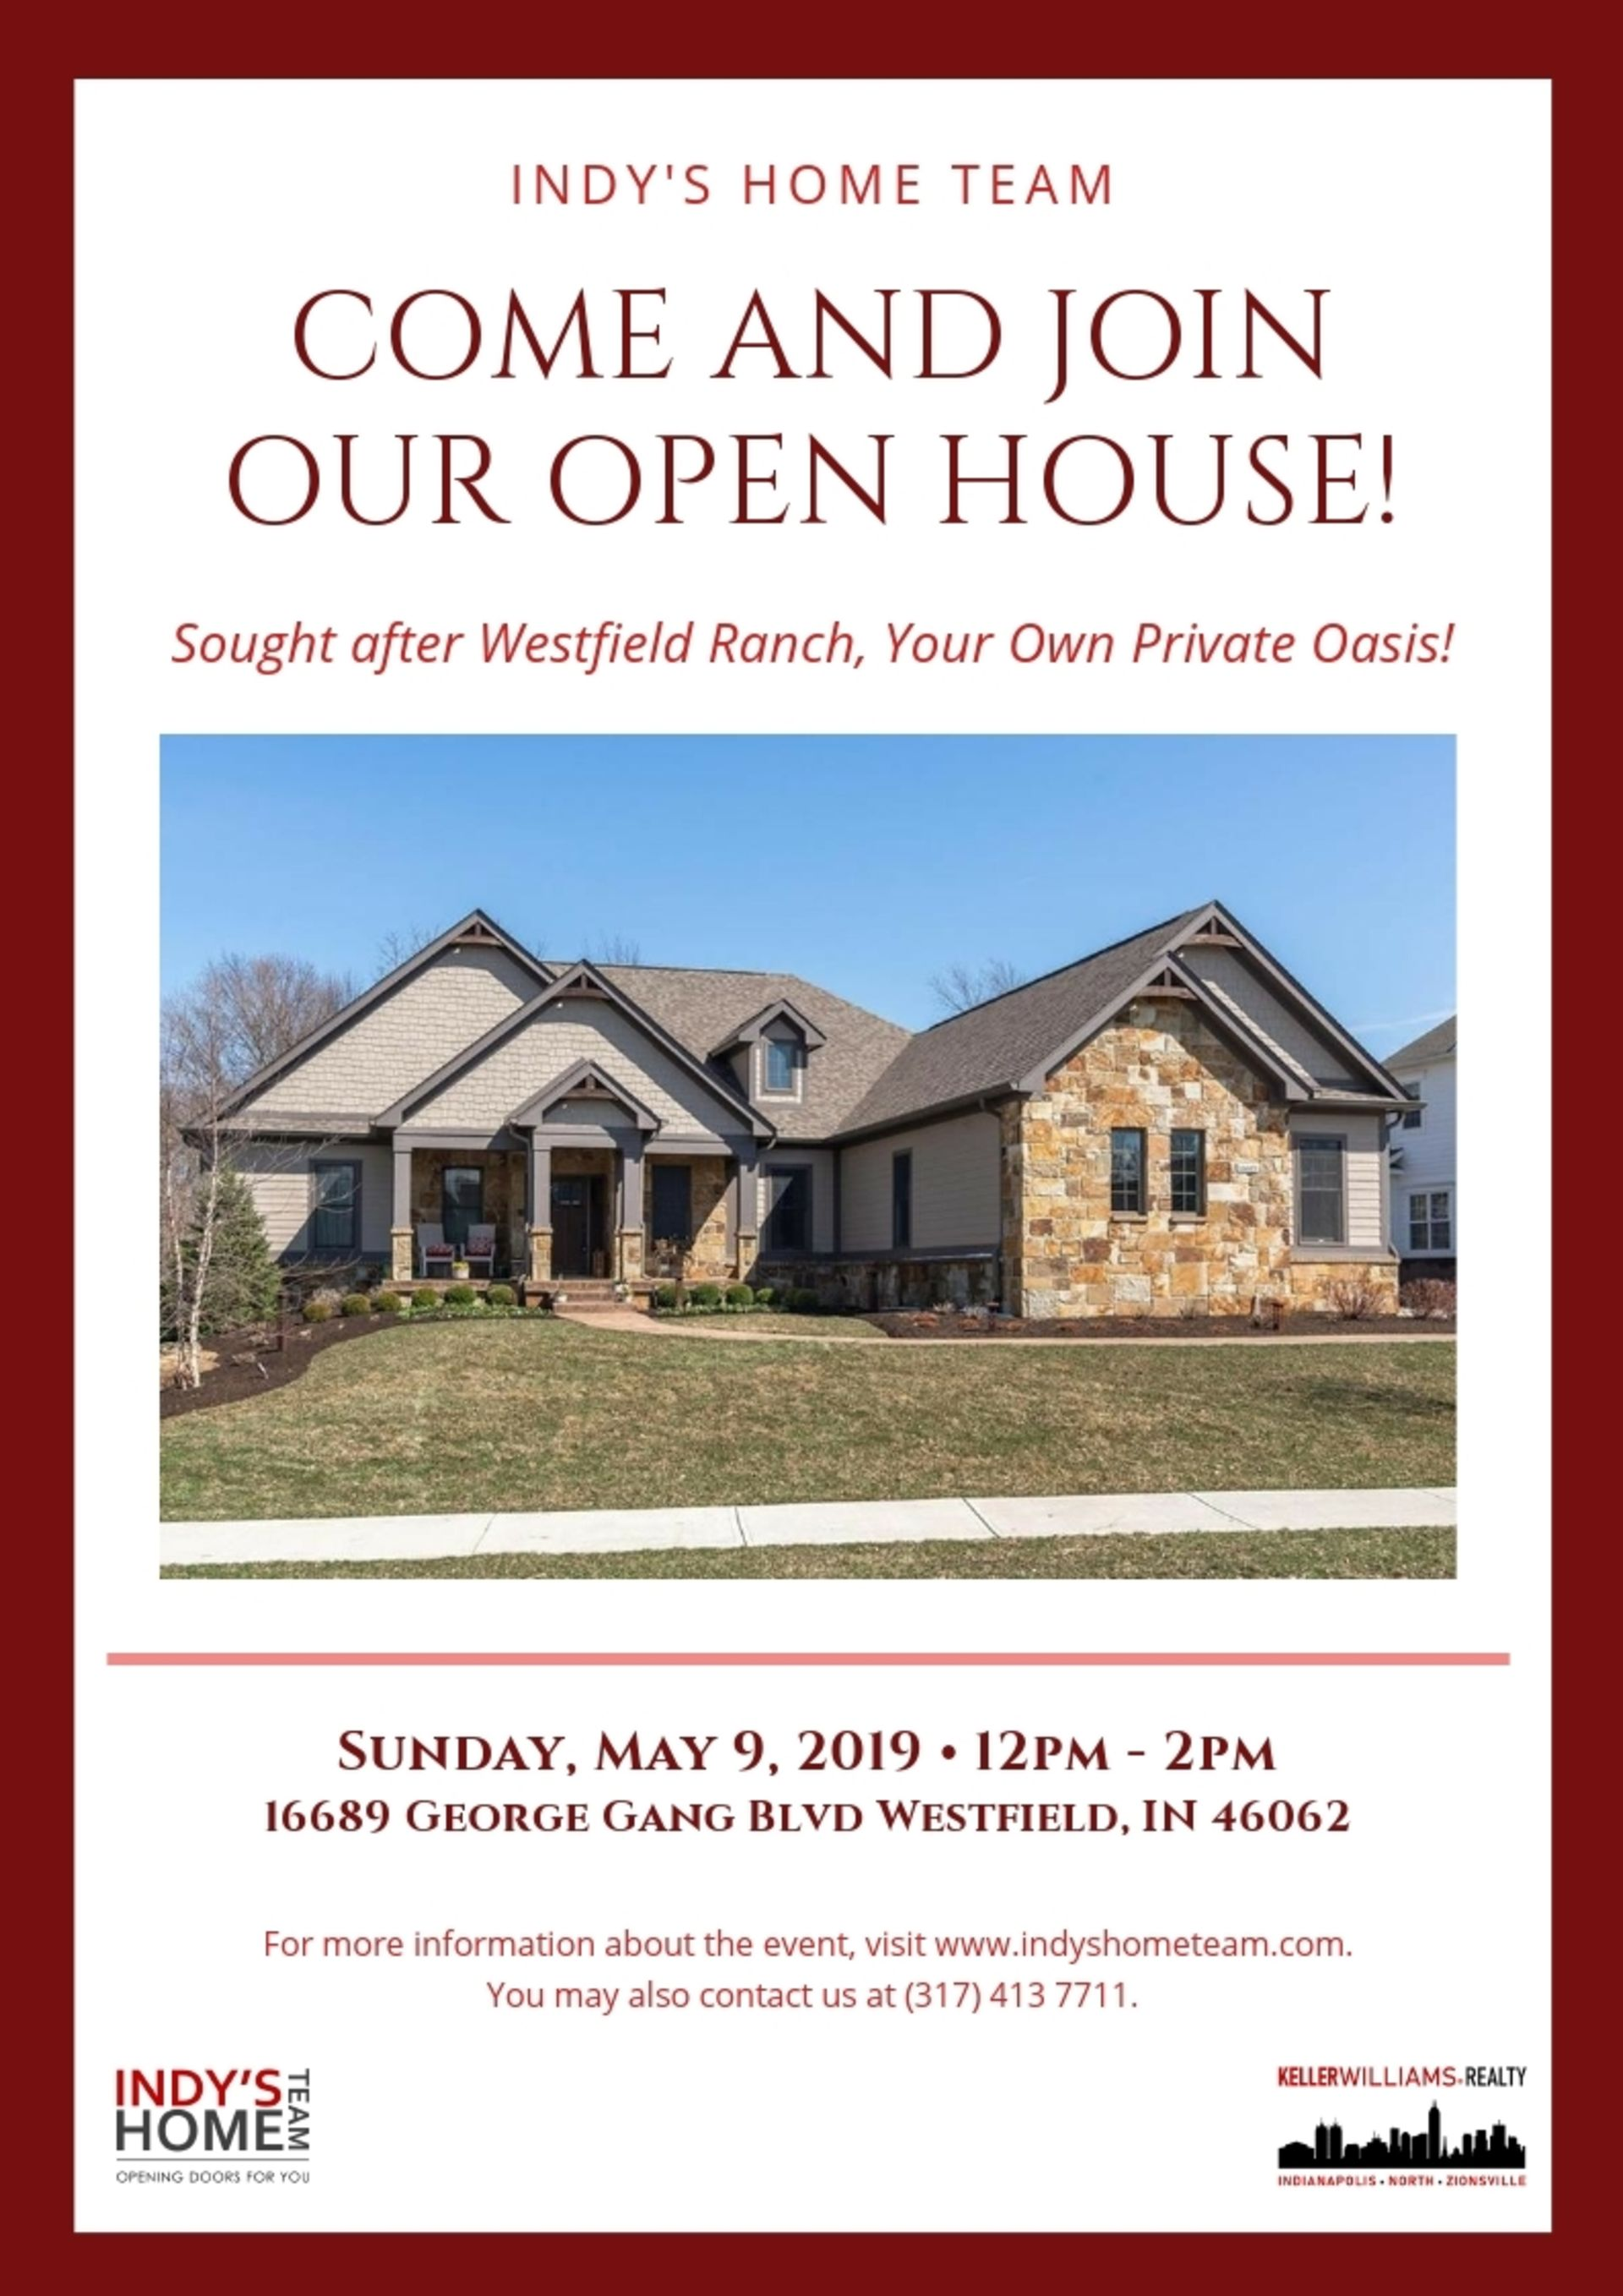 OPEN HOUSE   SUNDAY, June 9th from 12-2 PM! – 16689 George Gang Blvd